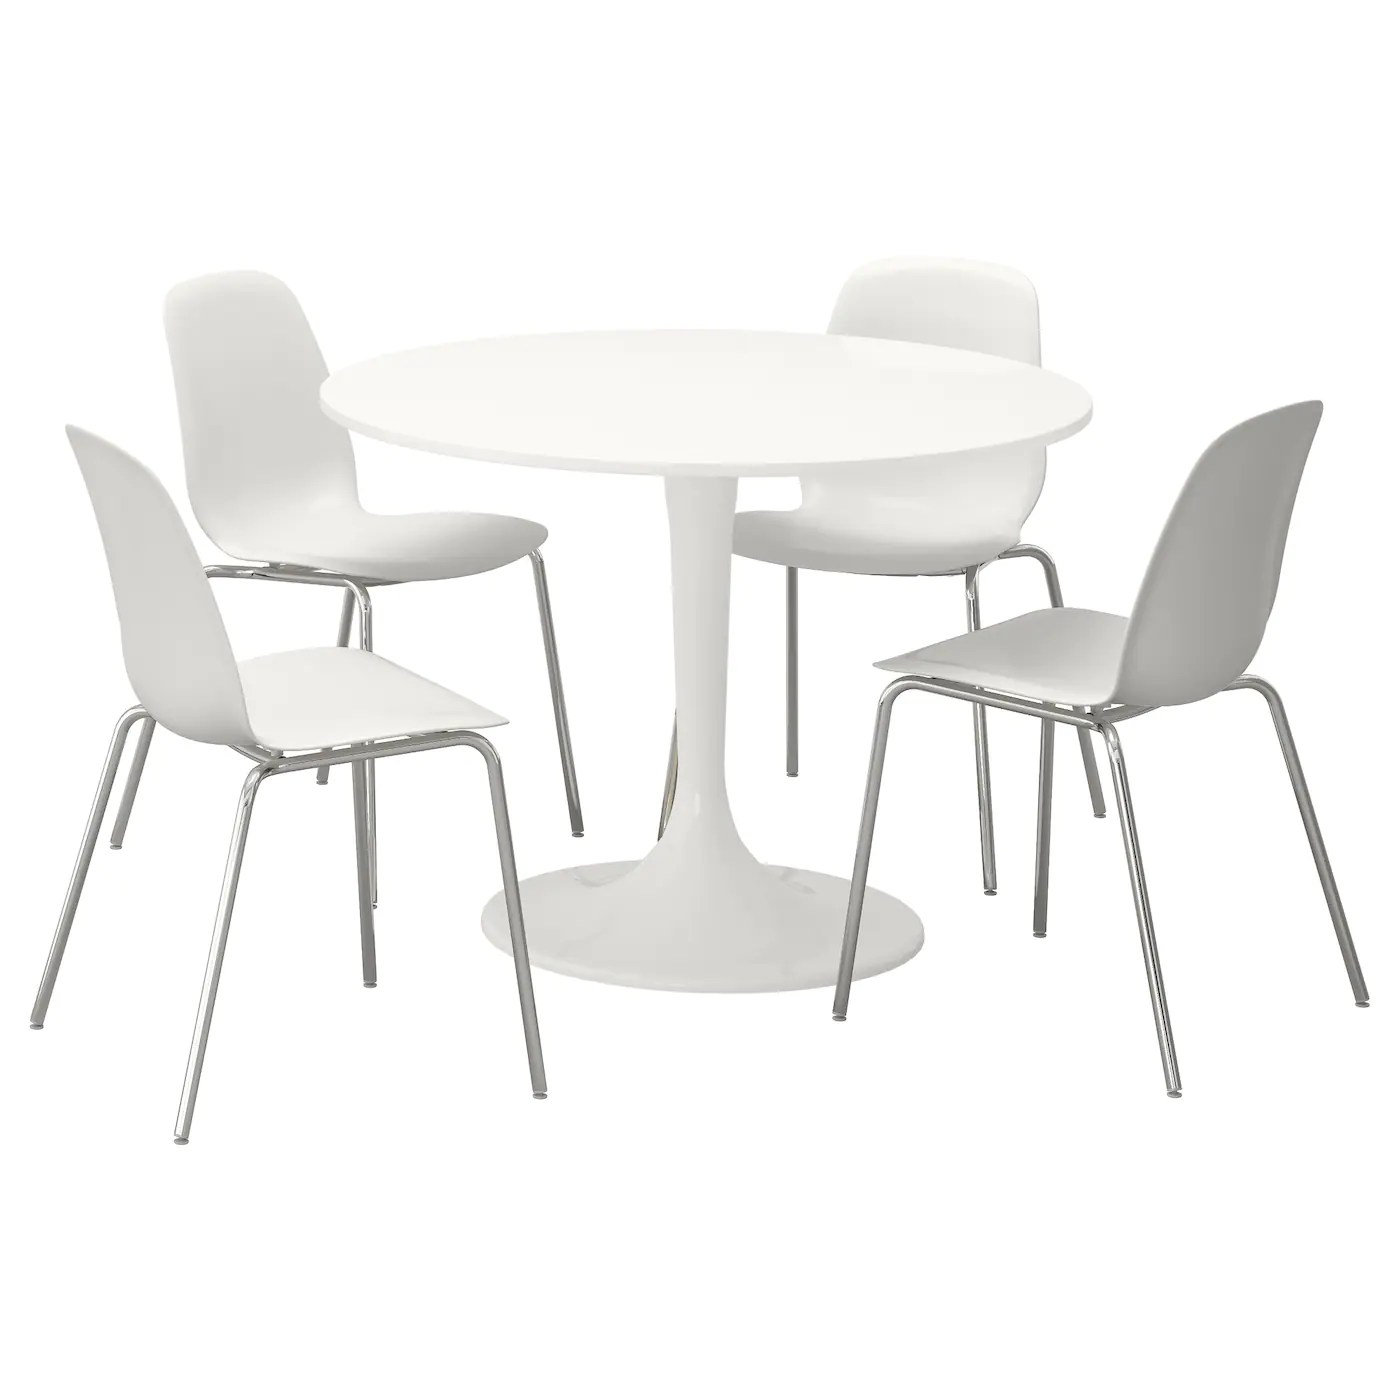 white table chairs chair covers hire sunshine coast docksta leifarne and 4 105 cm ikea